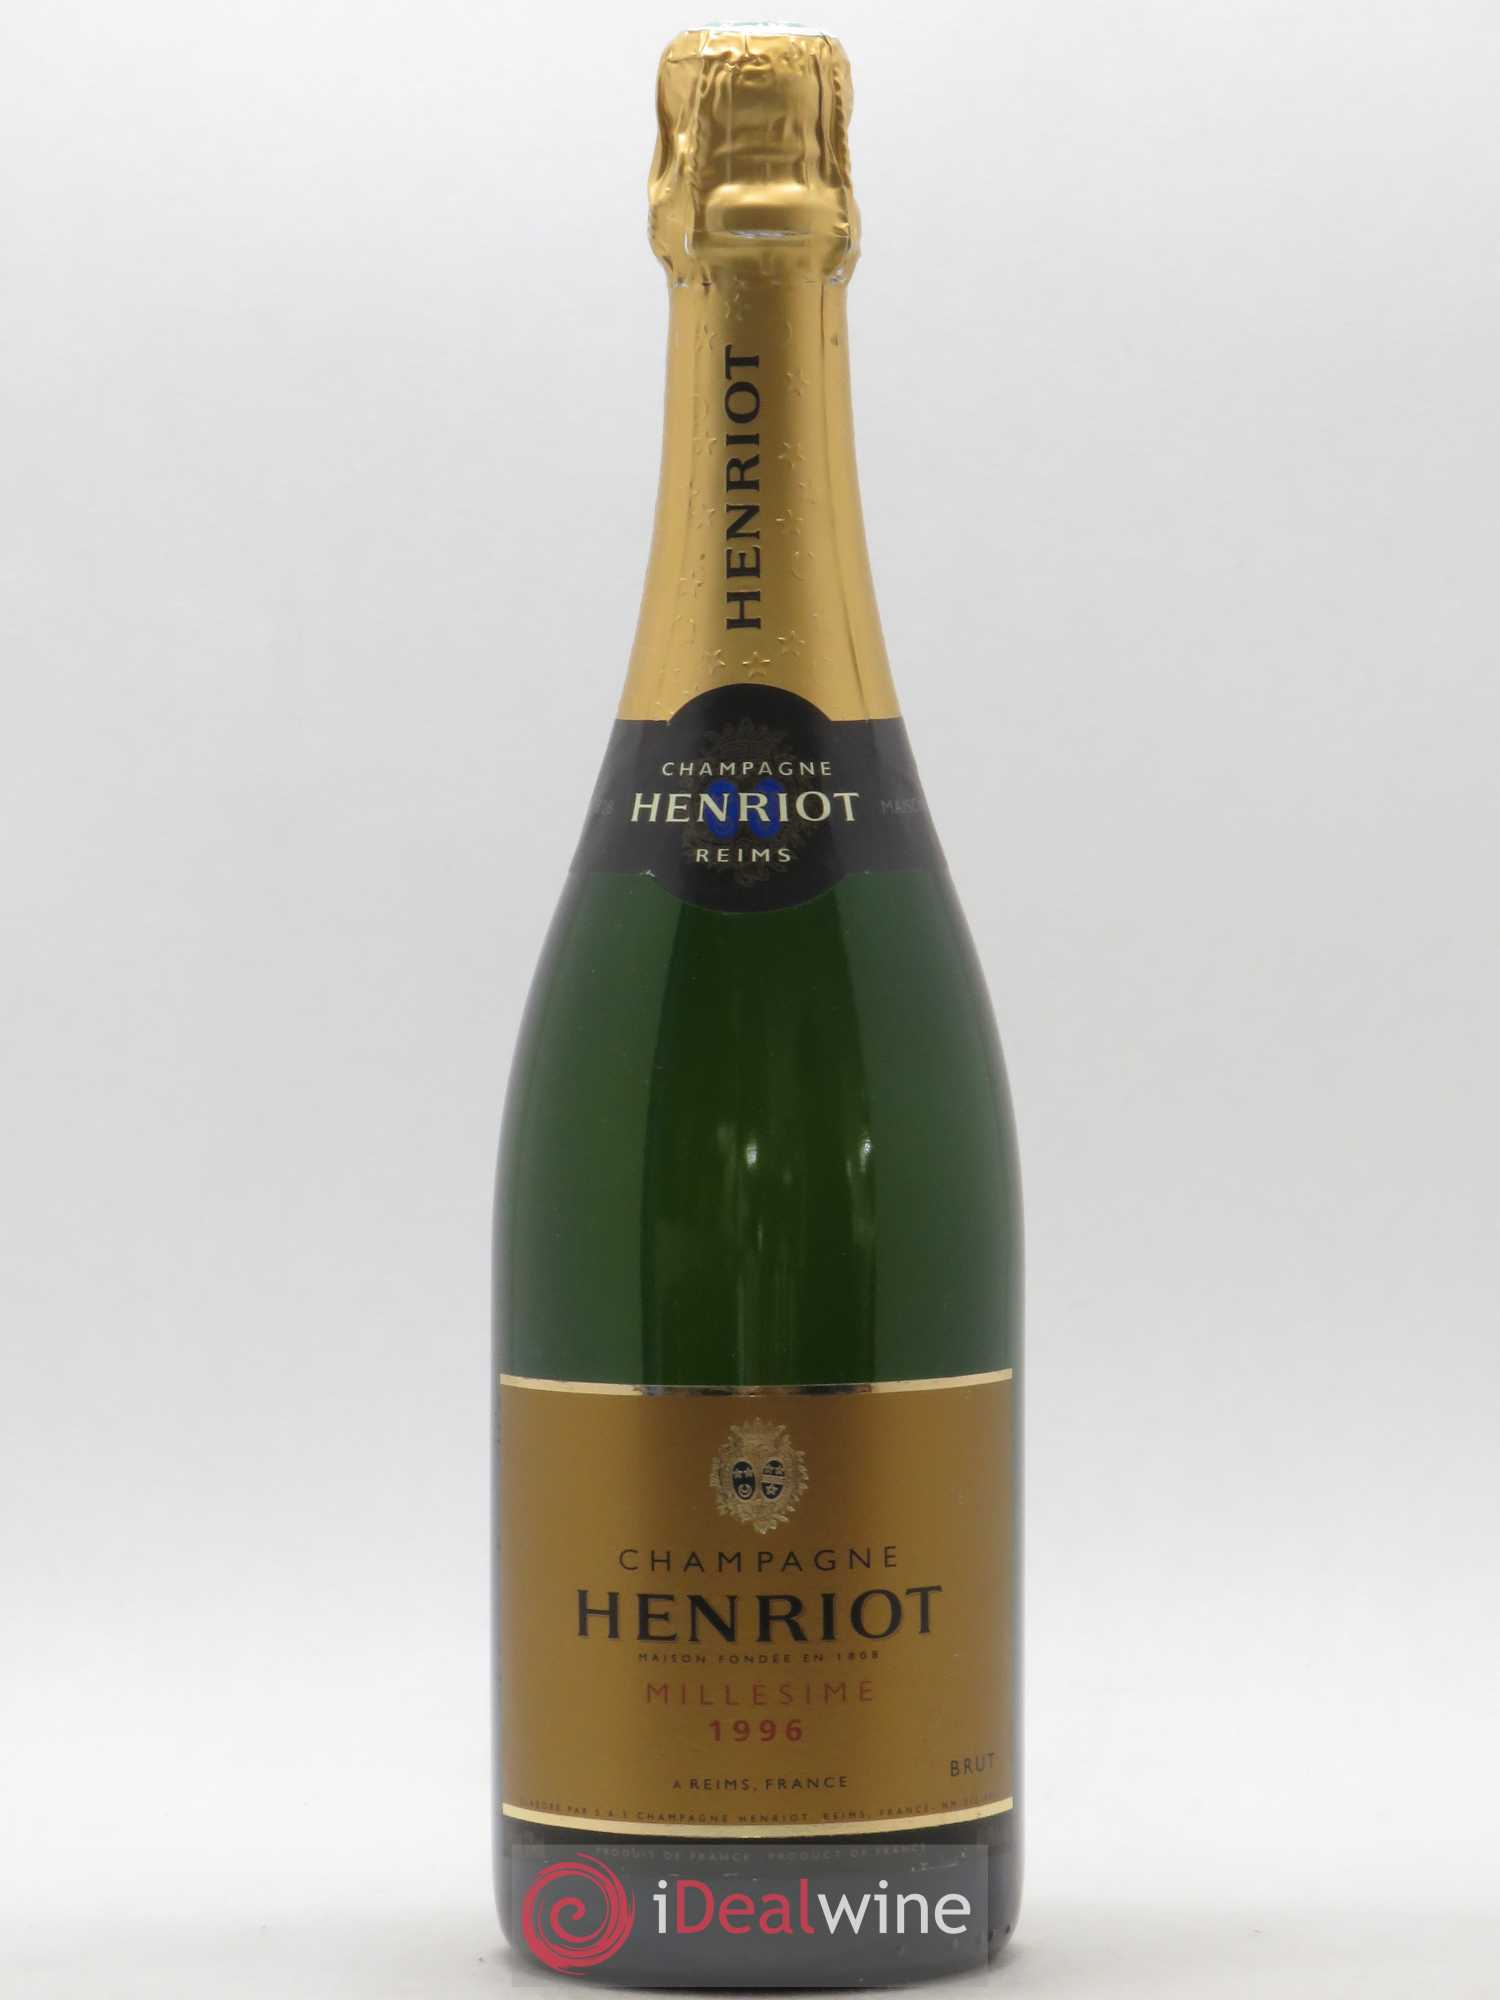 Brut Millésimé Henriot  1996 - Lot of 1 Bottle